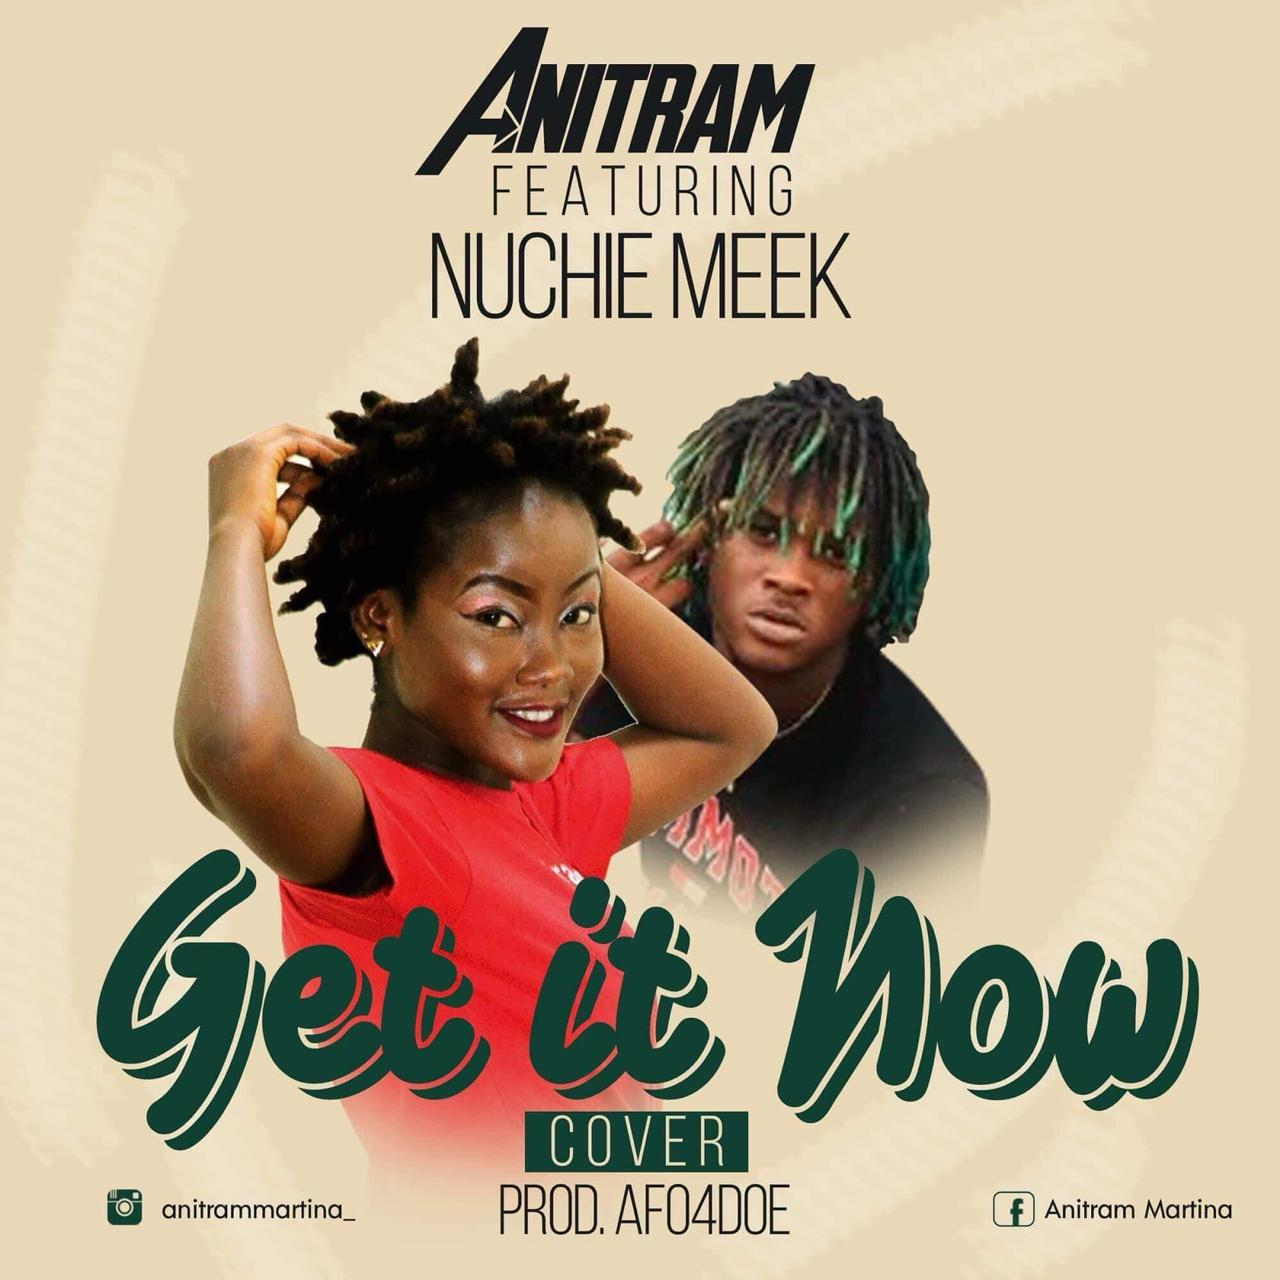 Anitram-Feat.-Nuchie-Meek-Get-It-Now-Cover-Prod.-AFo4doe.jpg